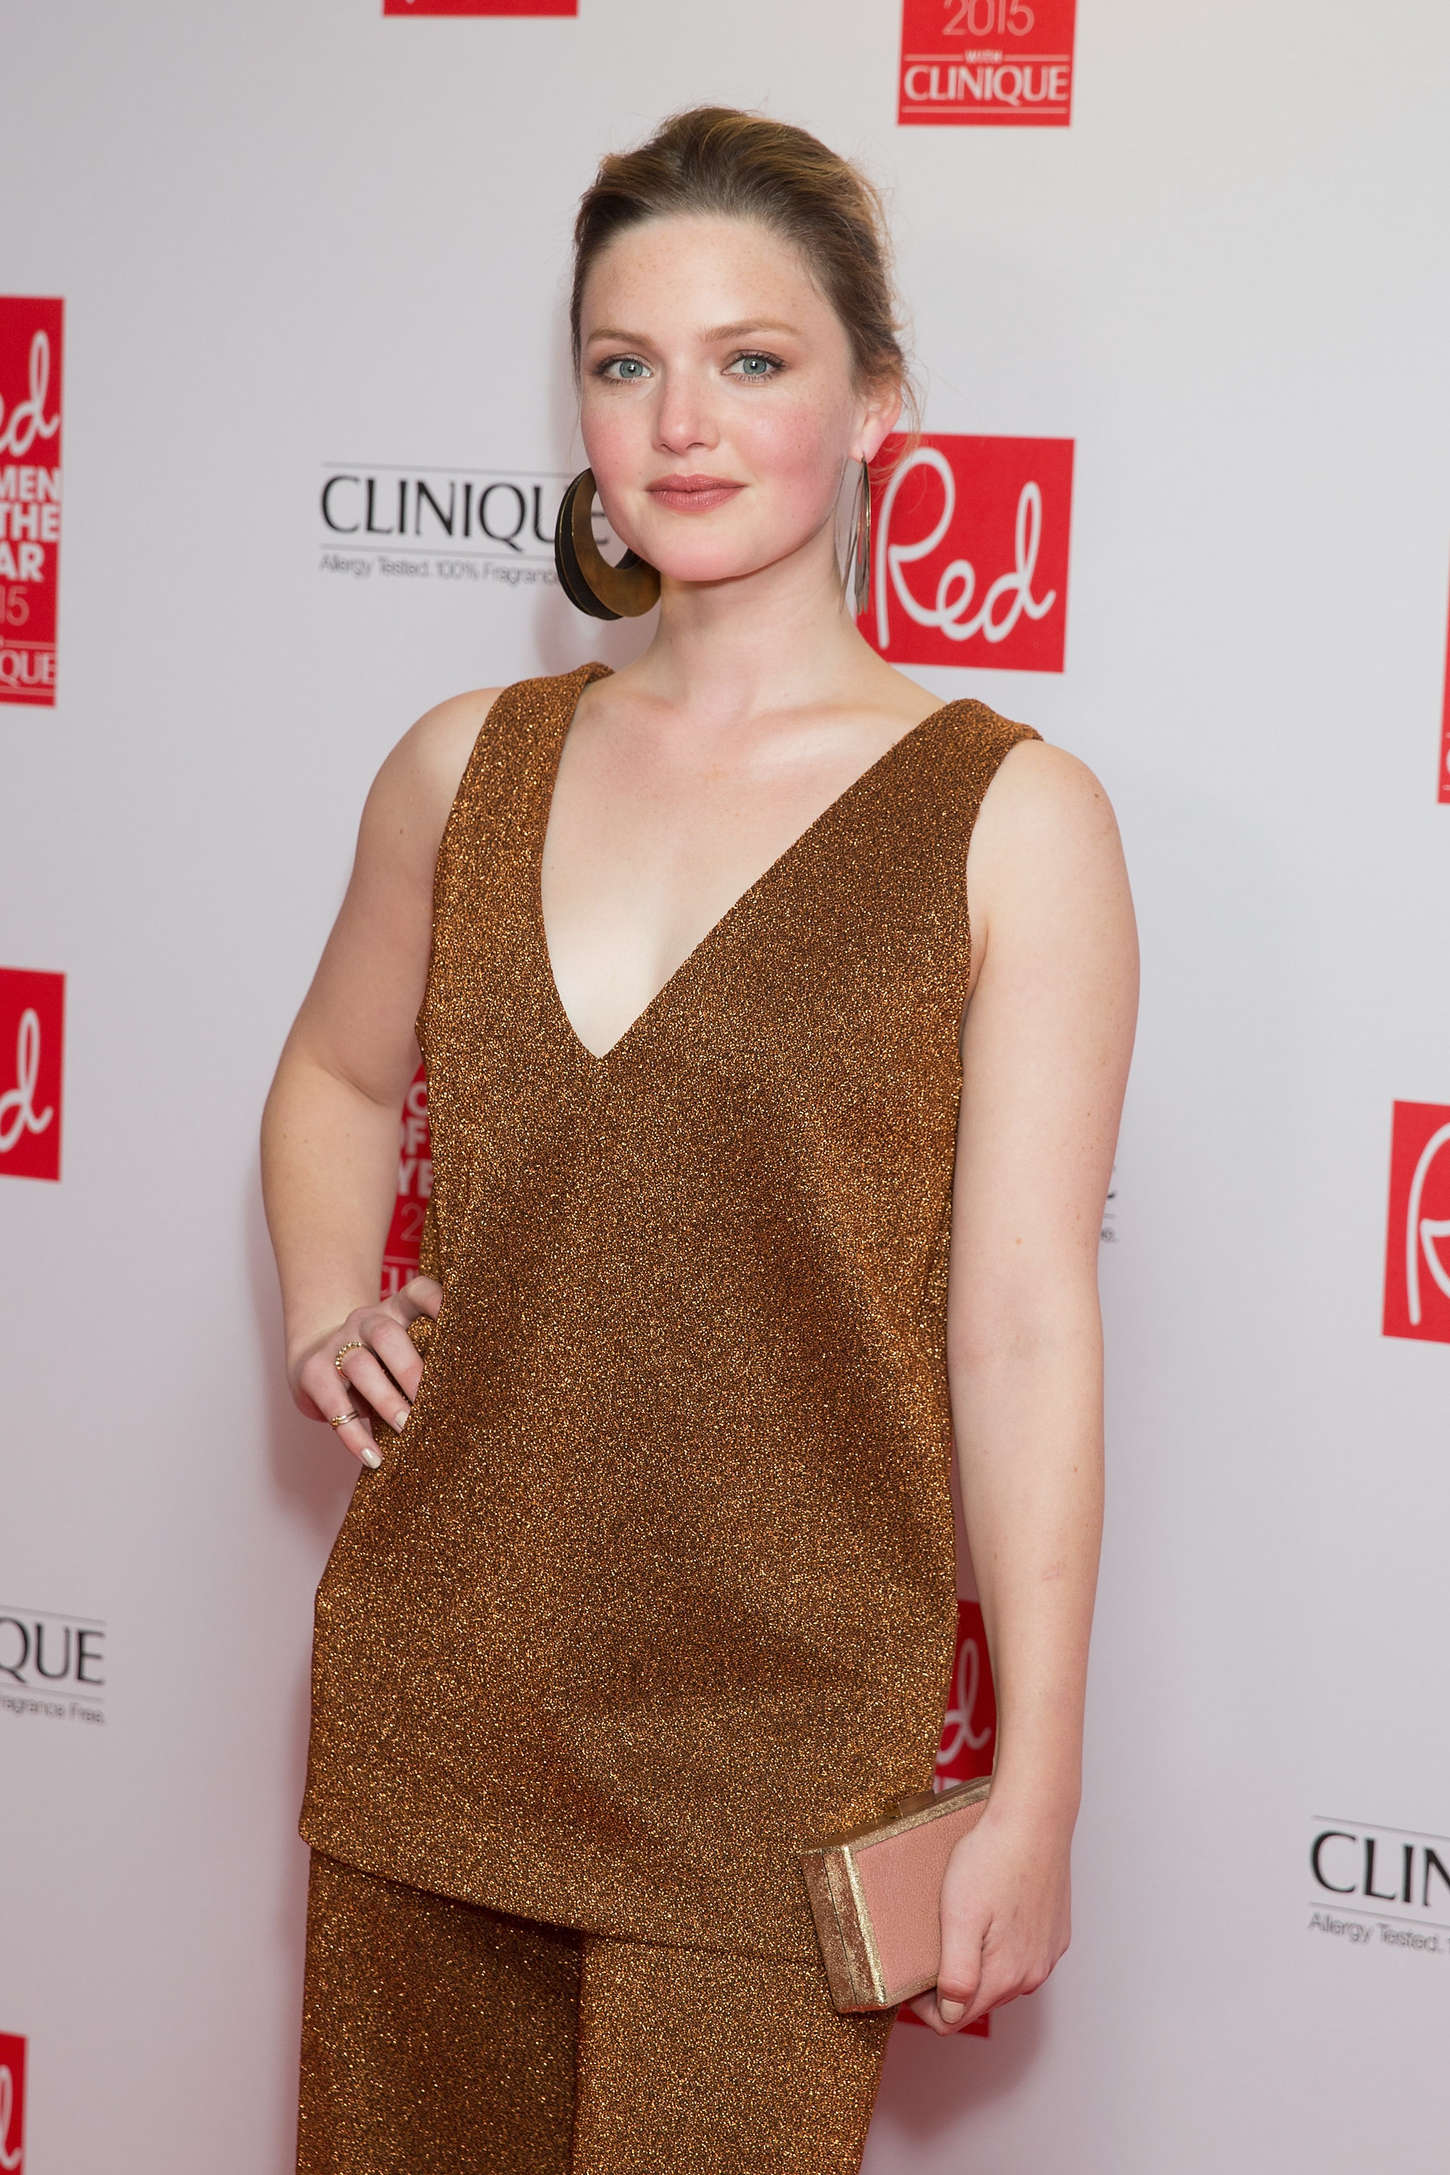 Holliday Grainger Red Women Of The Year Awards in London